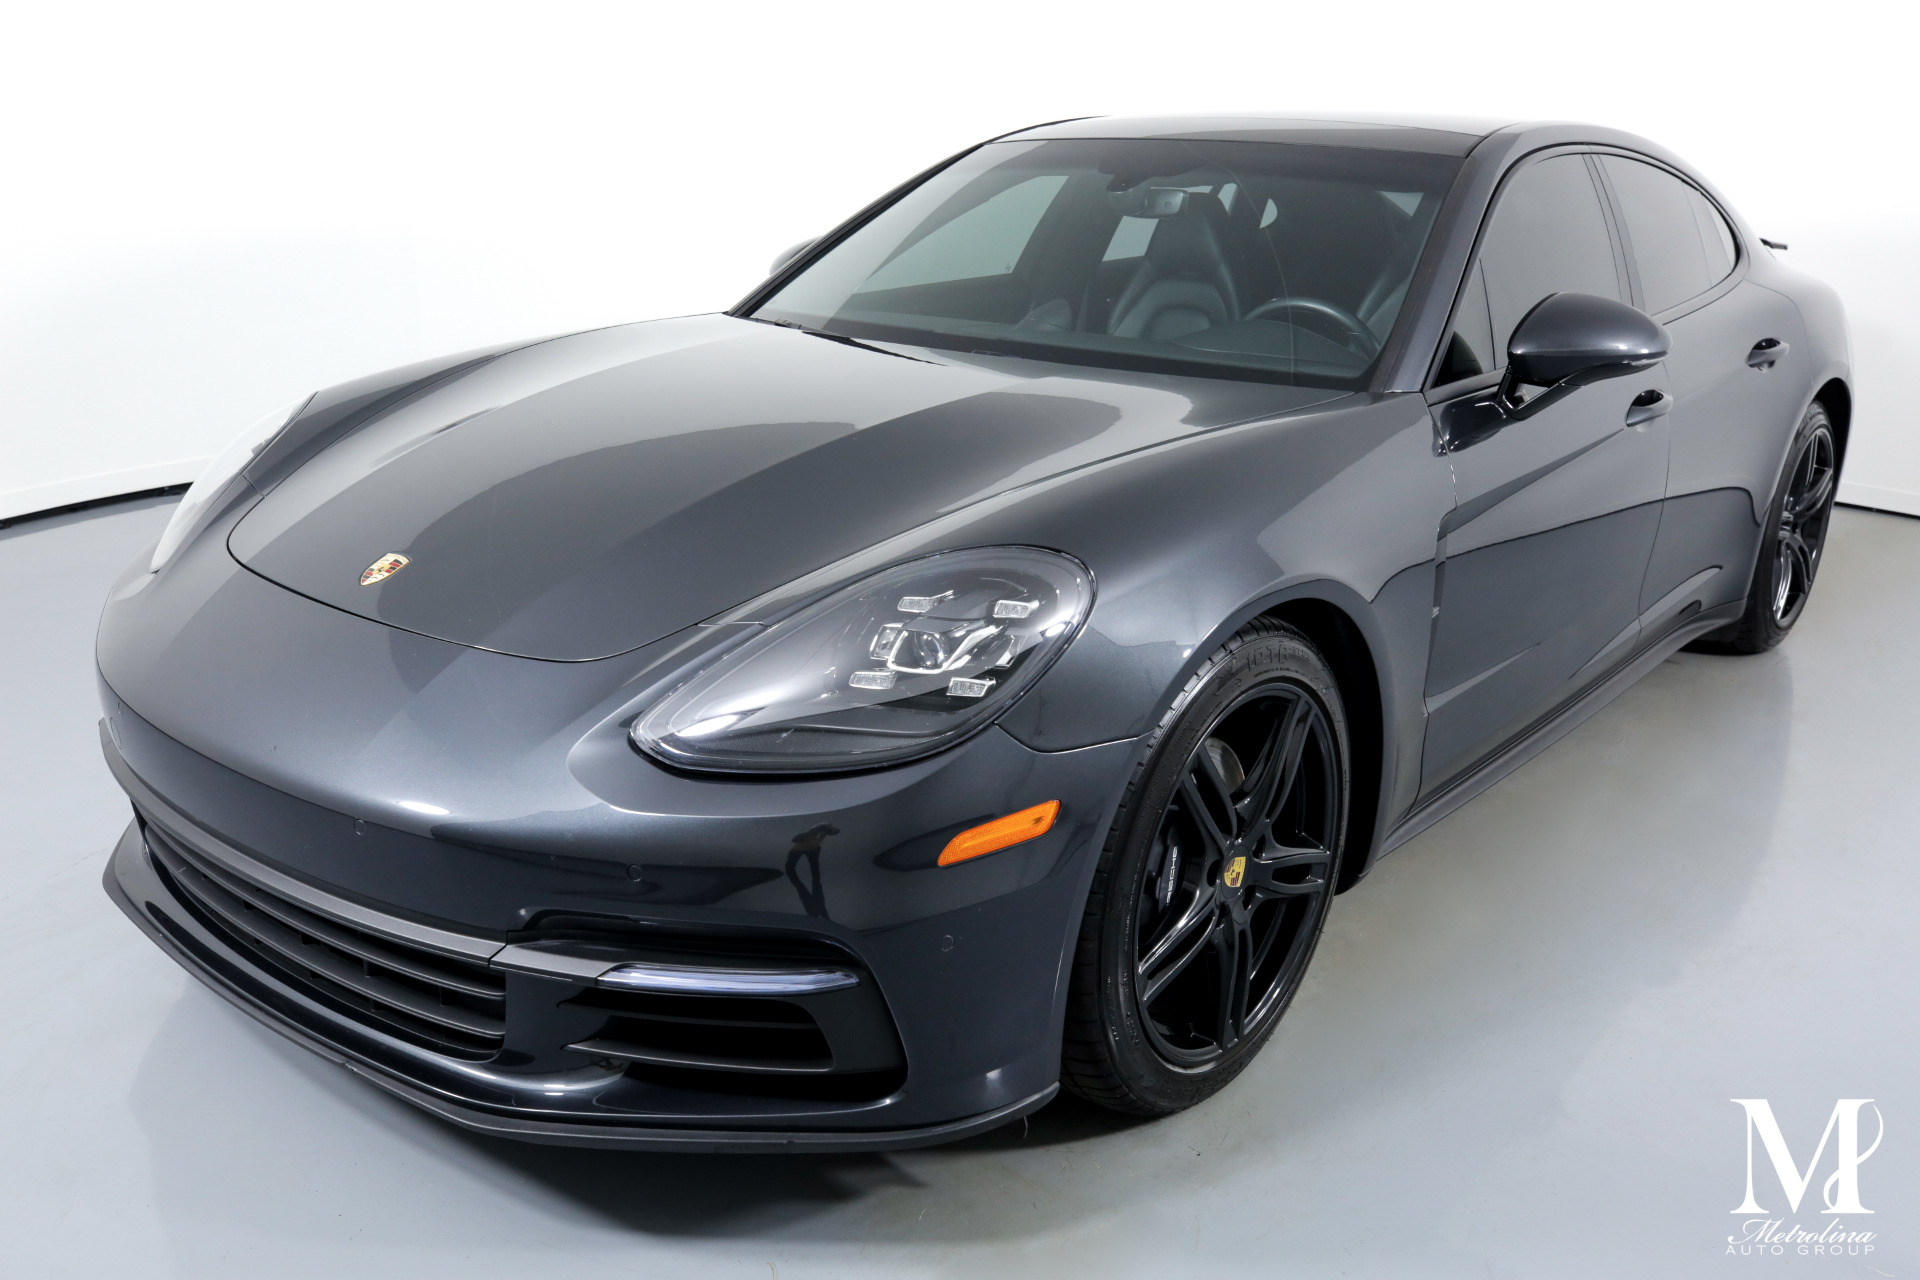 Used 2017 Porsche Panamera for sale $66,996 at Metrolina Auto Group in Charlotte NC 28217 - 4